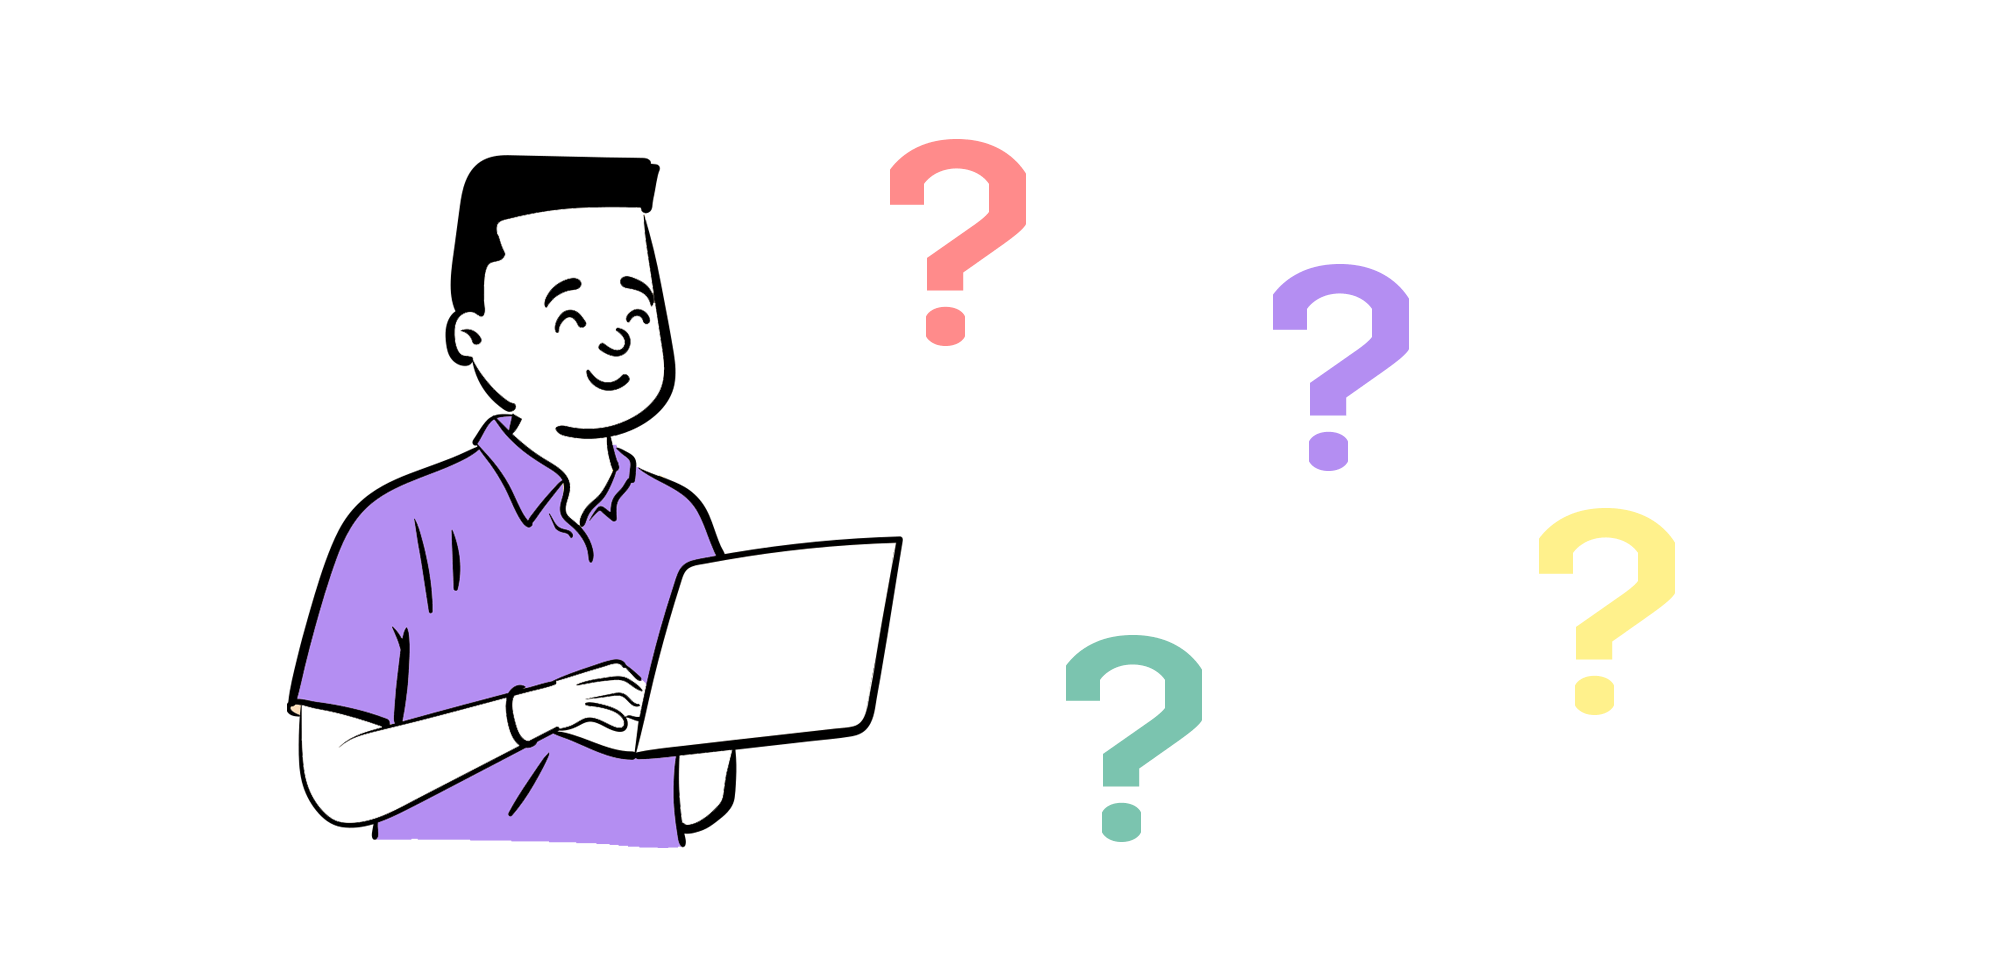 hr-analytics-software-questions-illustration